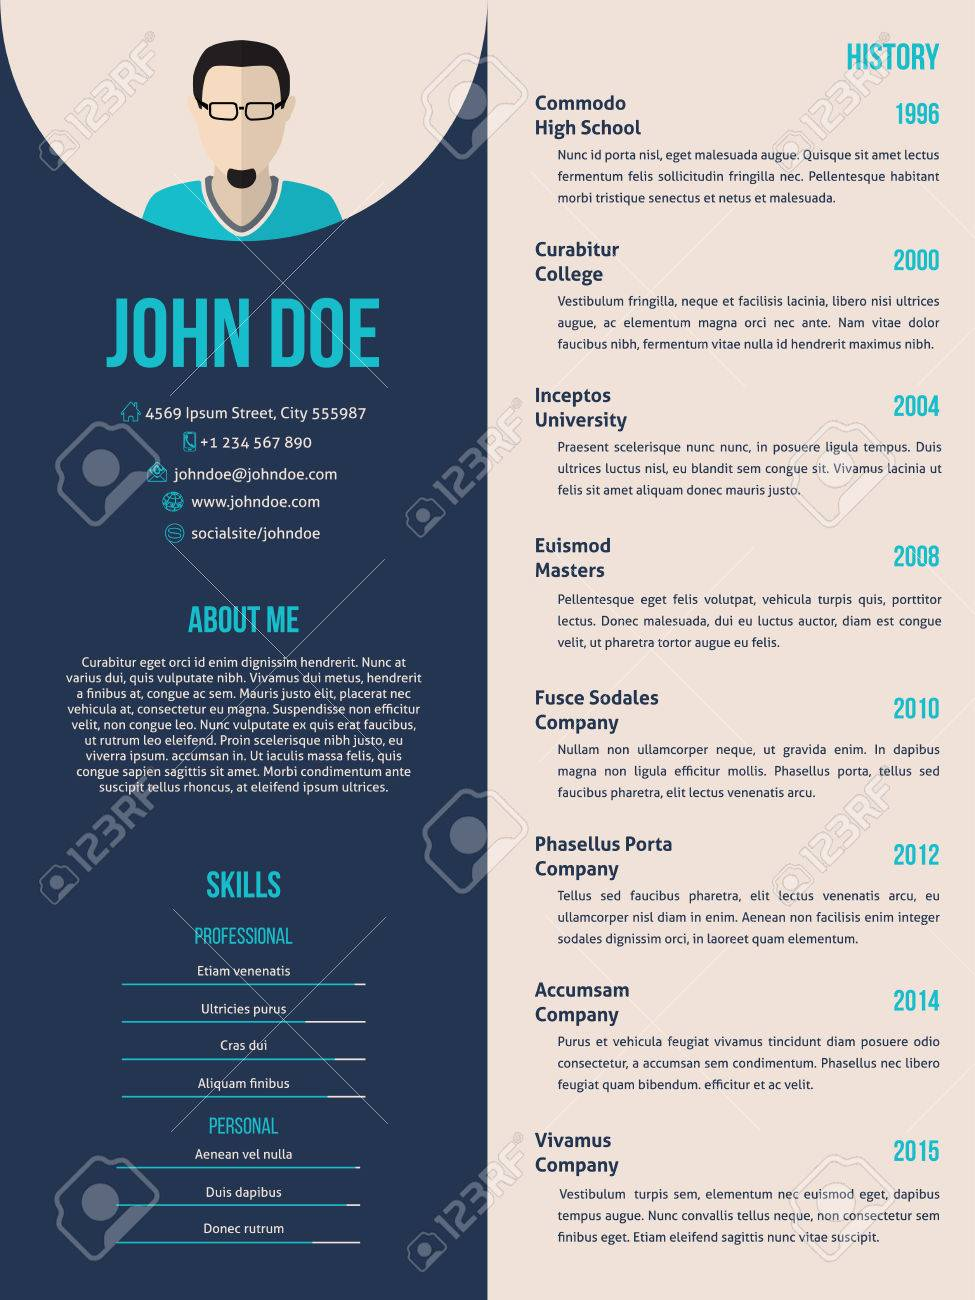 New Curriculum Vitae Cv Resume Template Design Royalty Free Cliparts     New curriculum vitae cv resume template design Stock Vector   46080610